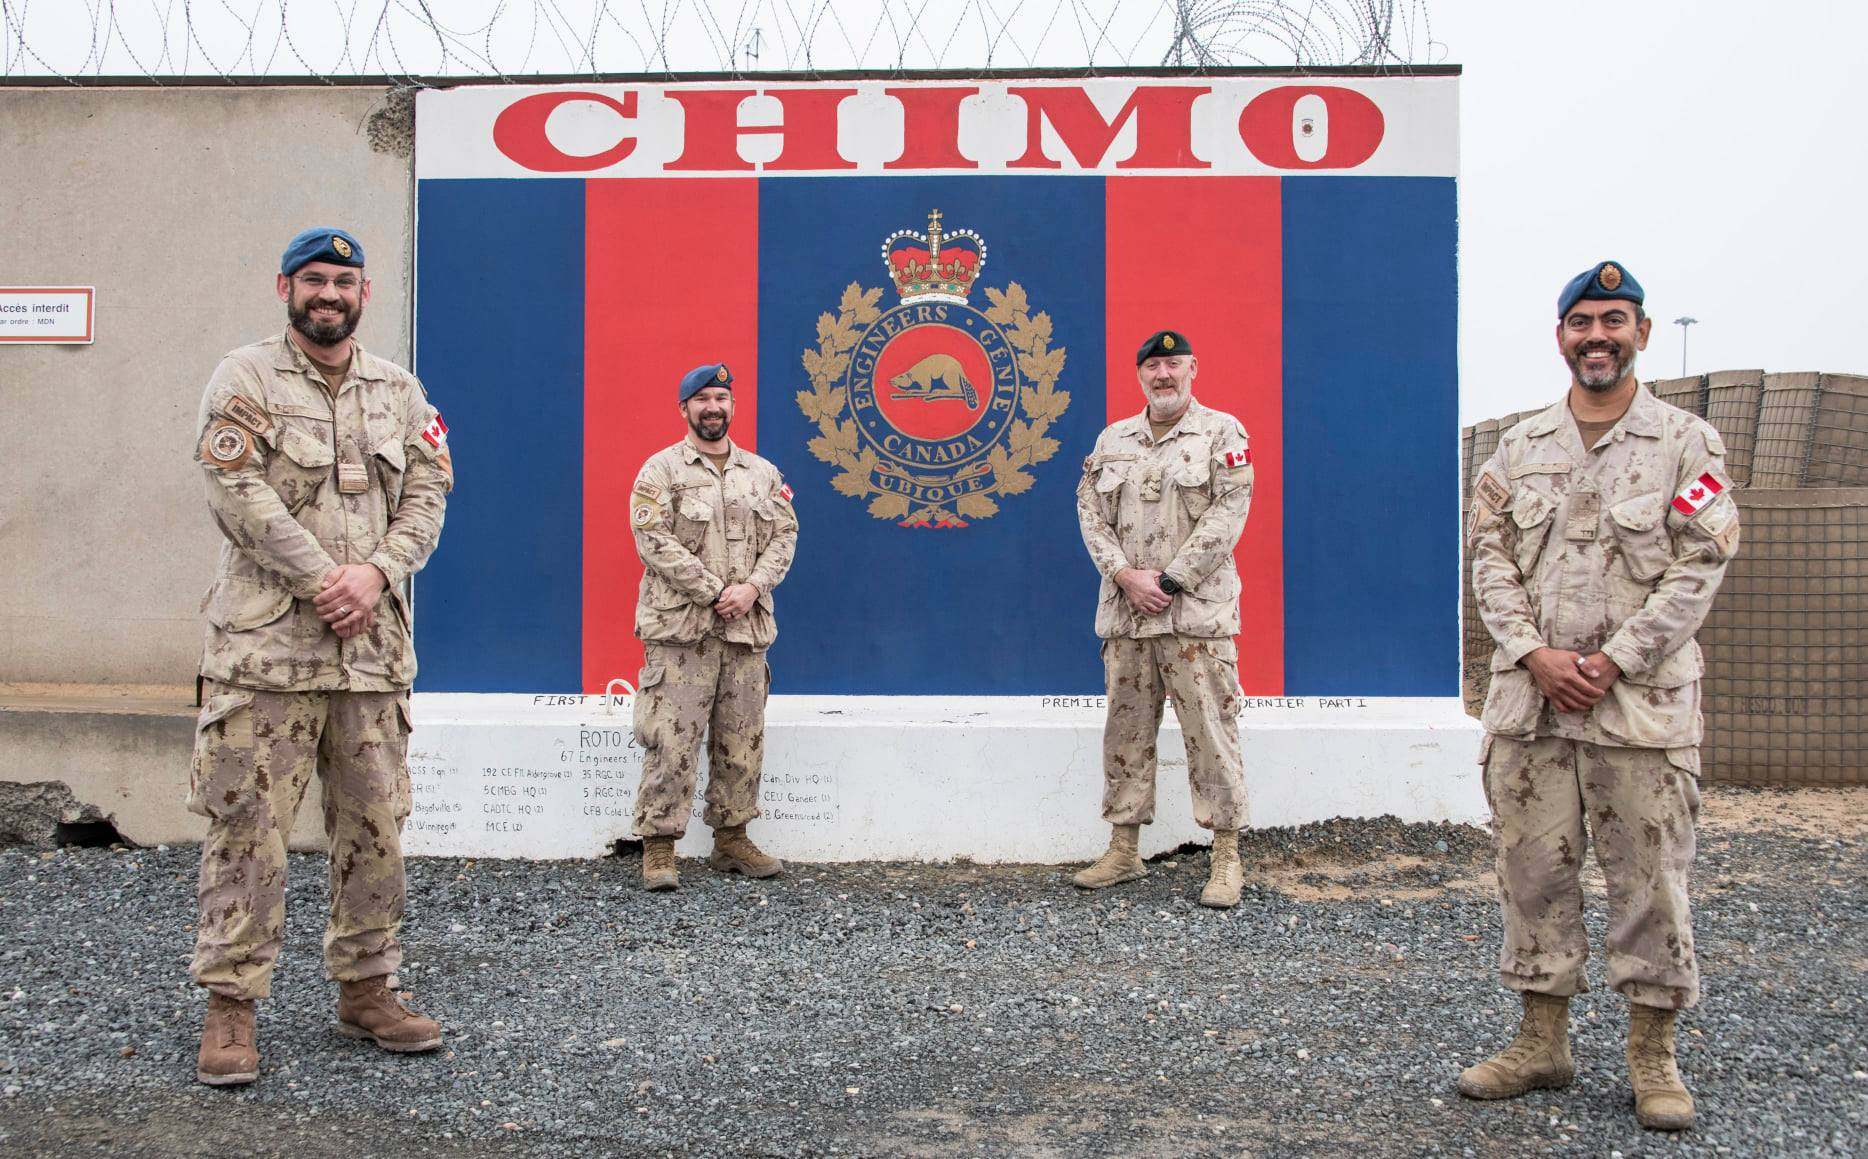 Master Warrant Officer (MWO) Edward Hebb (second from left), Engineer Sergeant Major and Plans MWO, Operation Support Hub – South West Asia (OSH-SWA), with Major Christopher Greaves, Joint Task Force – IMPACT Engineer, Officer in Charge, Lieutenant-Colonel Stéphane Roussel, and MWO Mario Rosales, Commanding Officer and Sergeant Major of OSH-SWA, in front of the Construction Engineering wall in Camp Canada, at Ali Al Salem Air Base, Kuwait, on December 4, 2020, after MWO Hebb learned that Governor General Julie Payette had awarded him the Order of Military Merit. PHOTO: Sailor Third Class Melissa Gonzalez